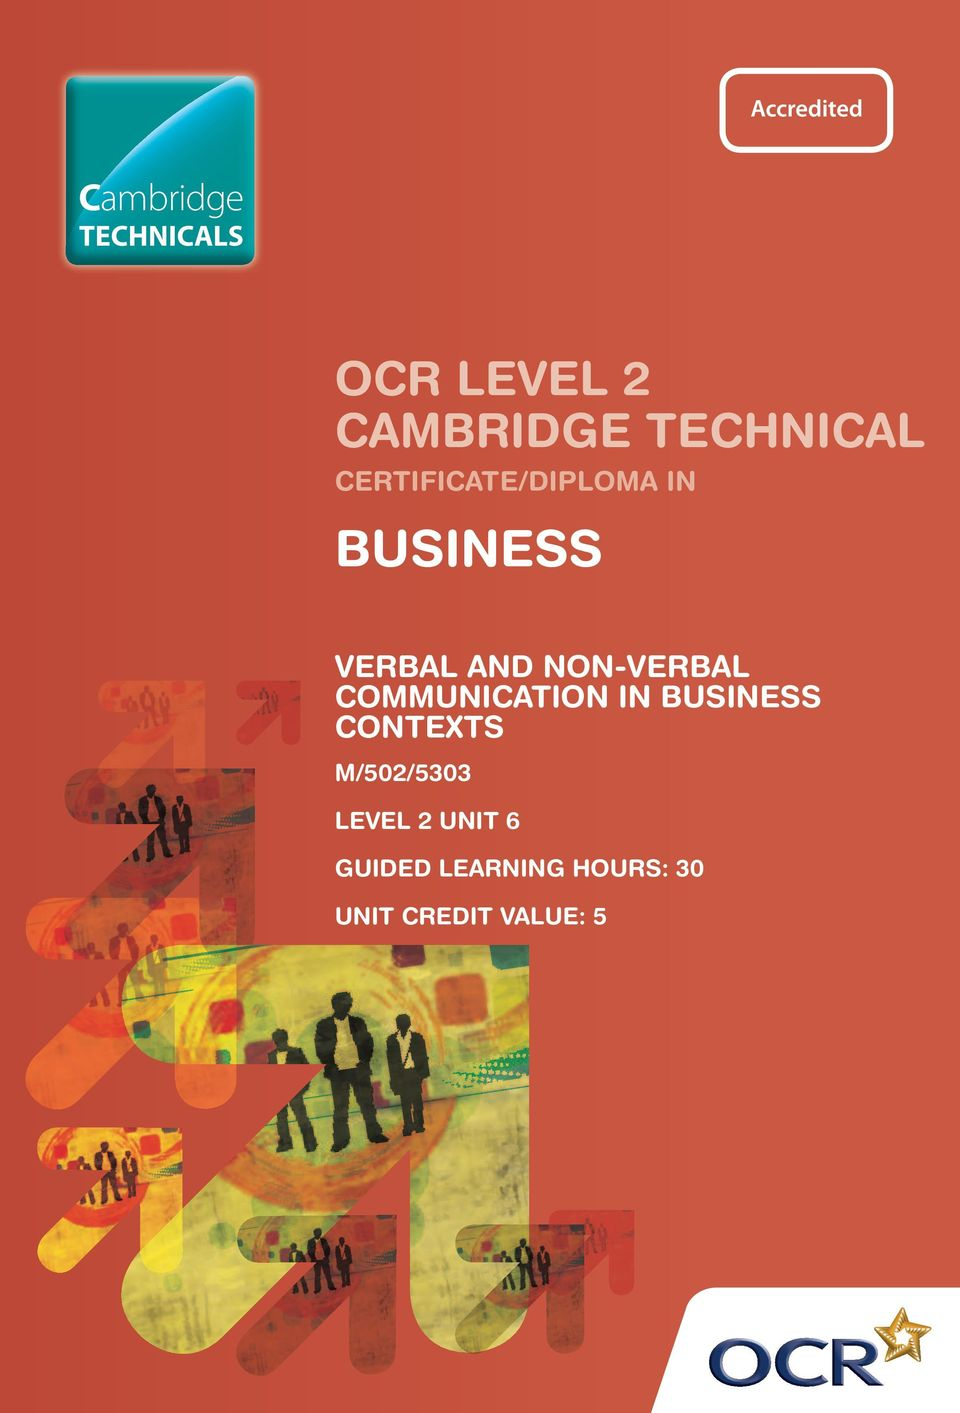 COMMUNICATION IN BUSINESS CONTEXTS M/502/5303 LEVEL 2